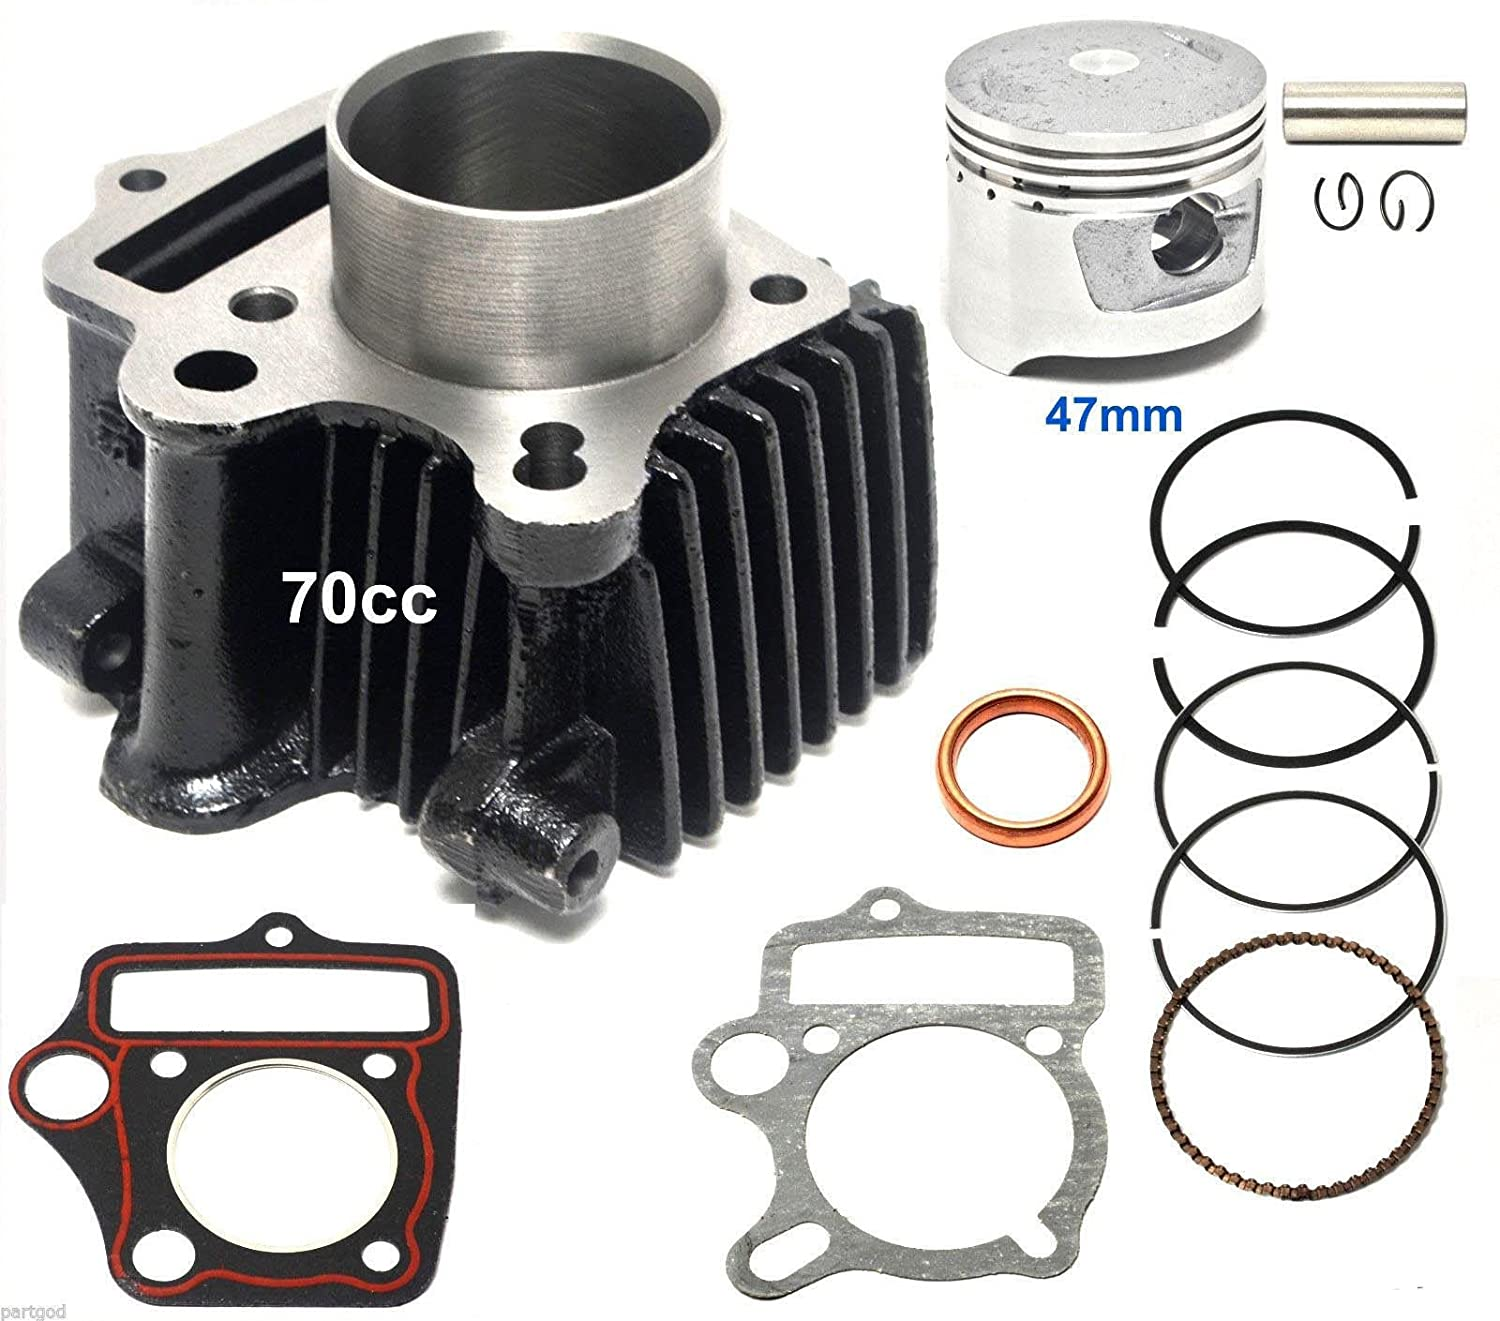 70cc 47mm Piston Cylinder Kit for Chinese ATV Dirt Bike GoKart 13mm pin1P47FMD WhatApart